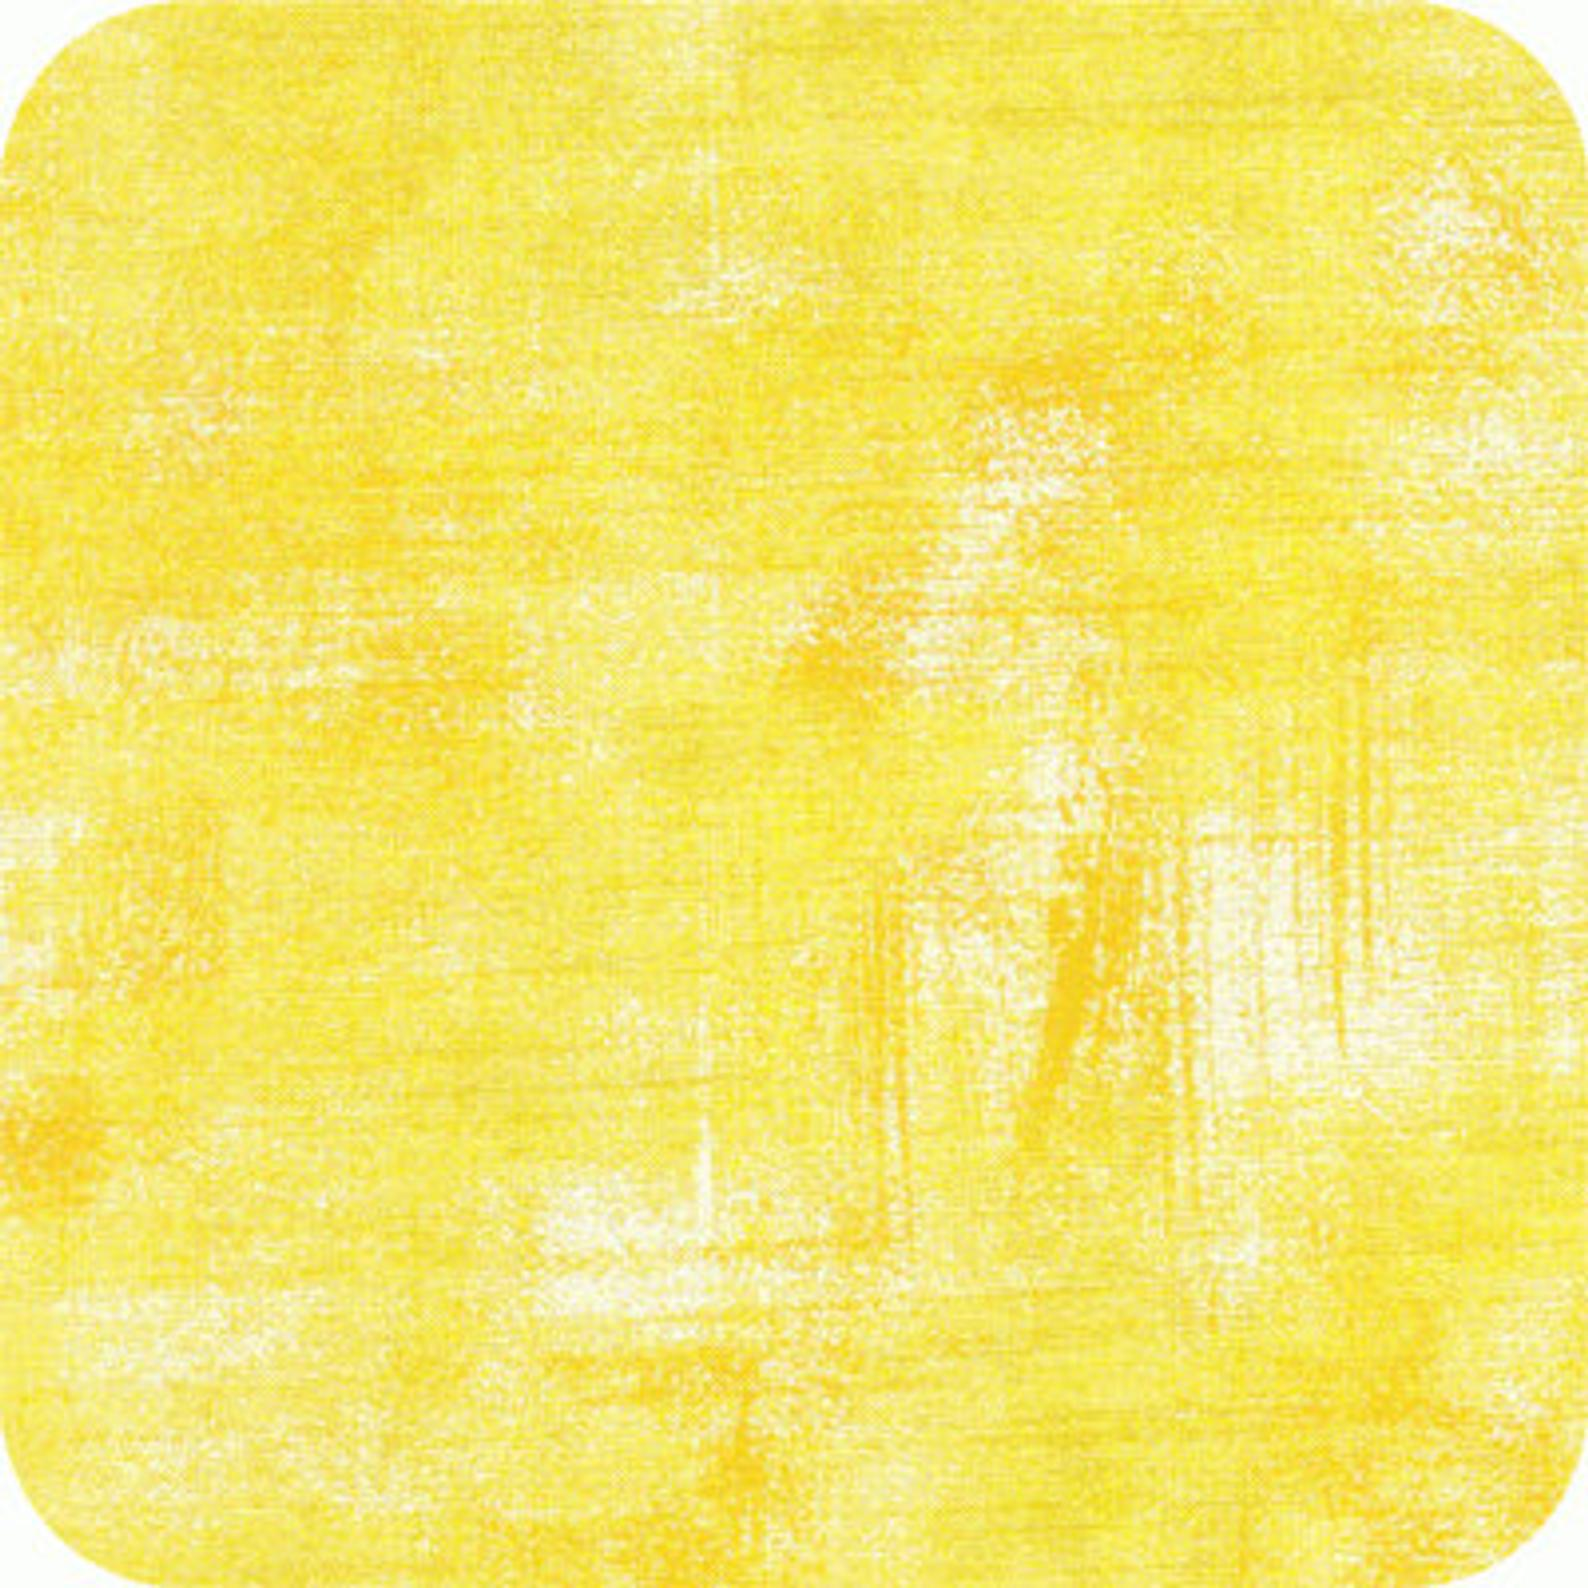 Moda Grunge Lemon Drop 1.50m remnant piece